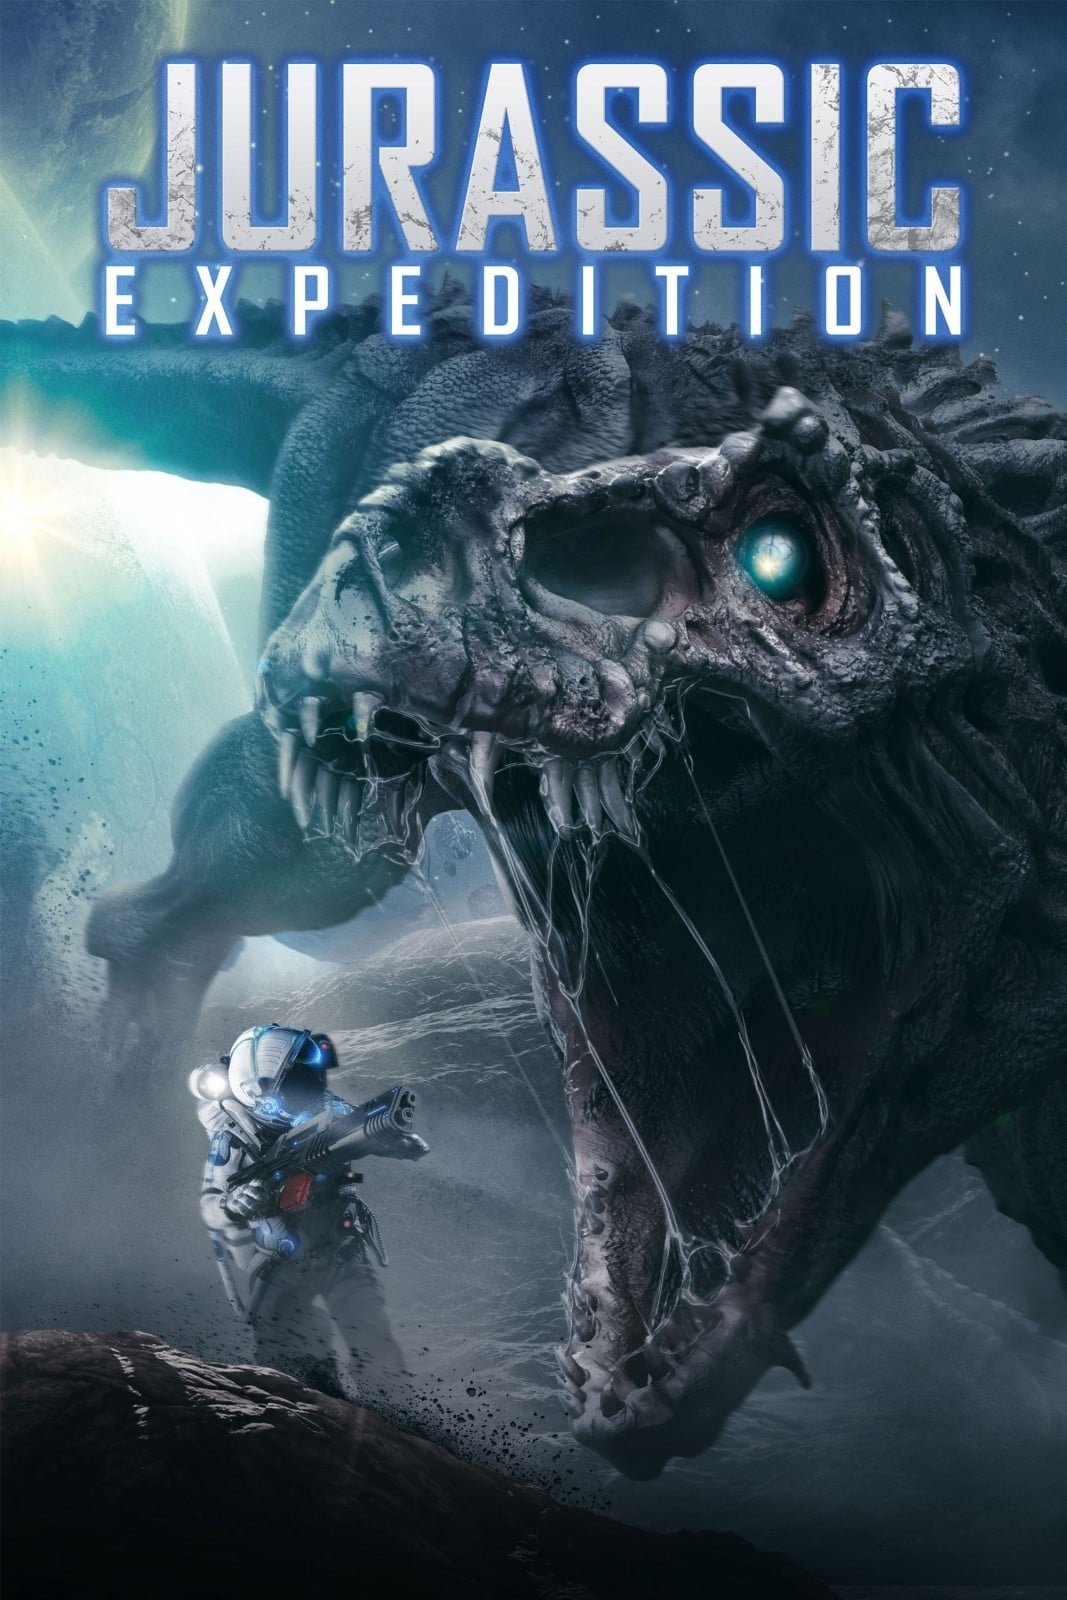 Jurassic Expedition (2019)